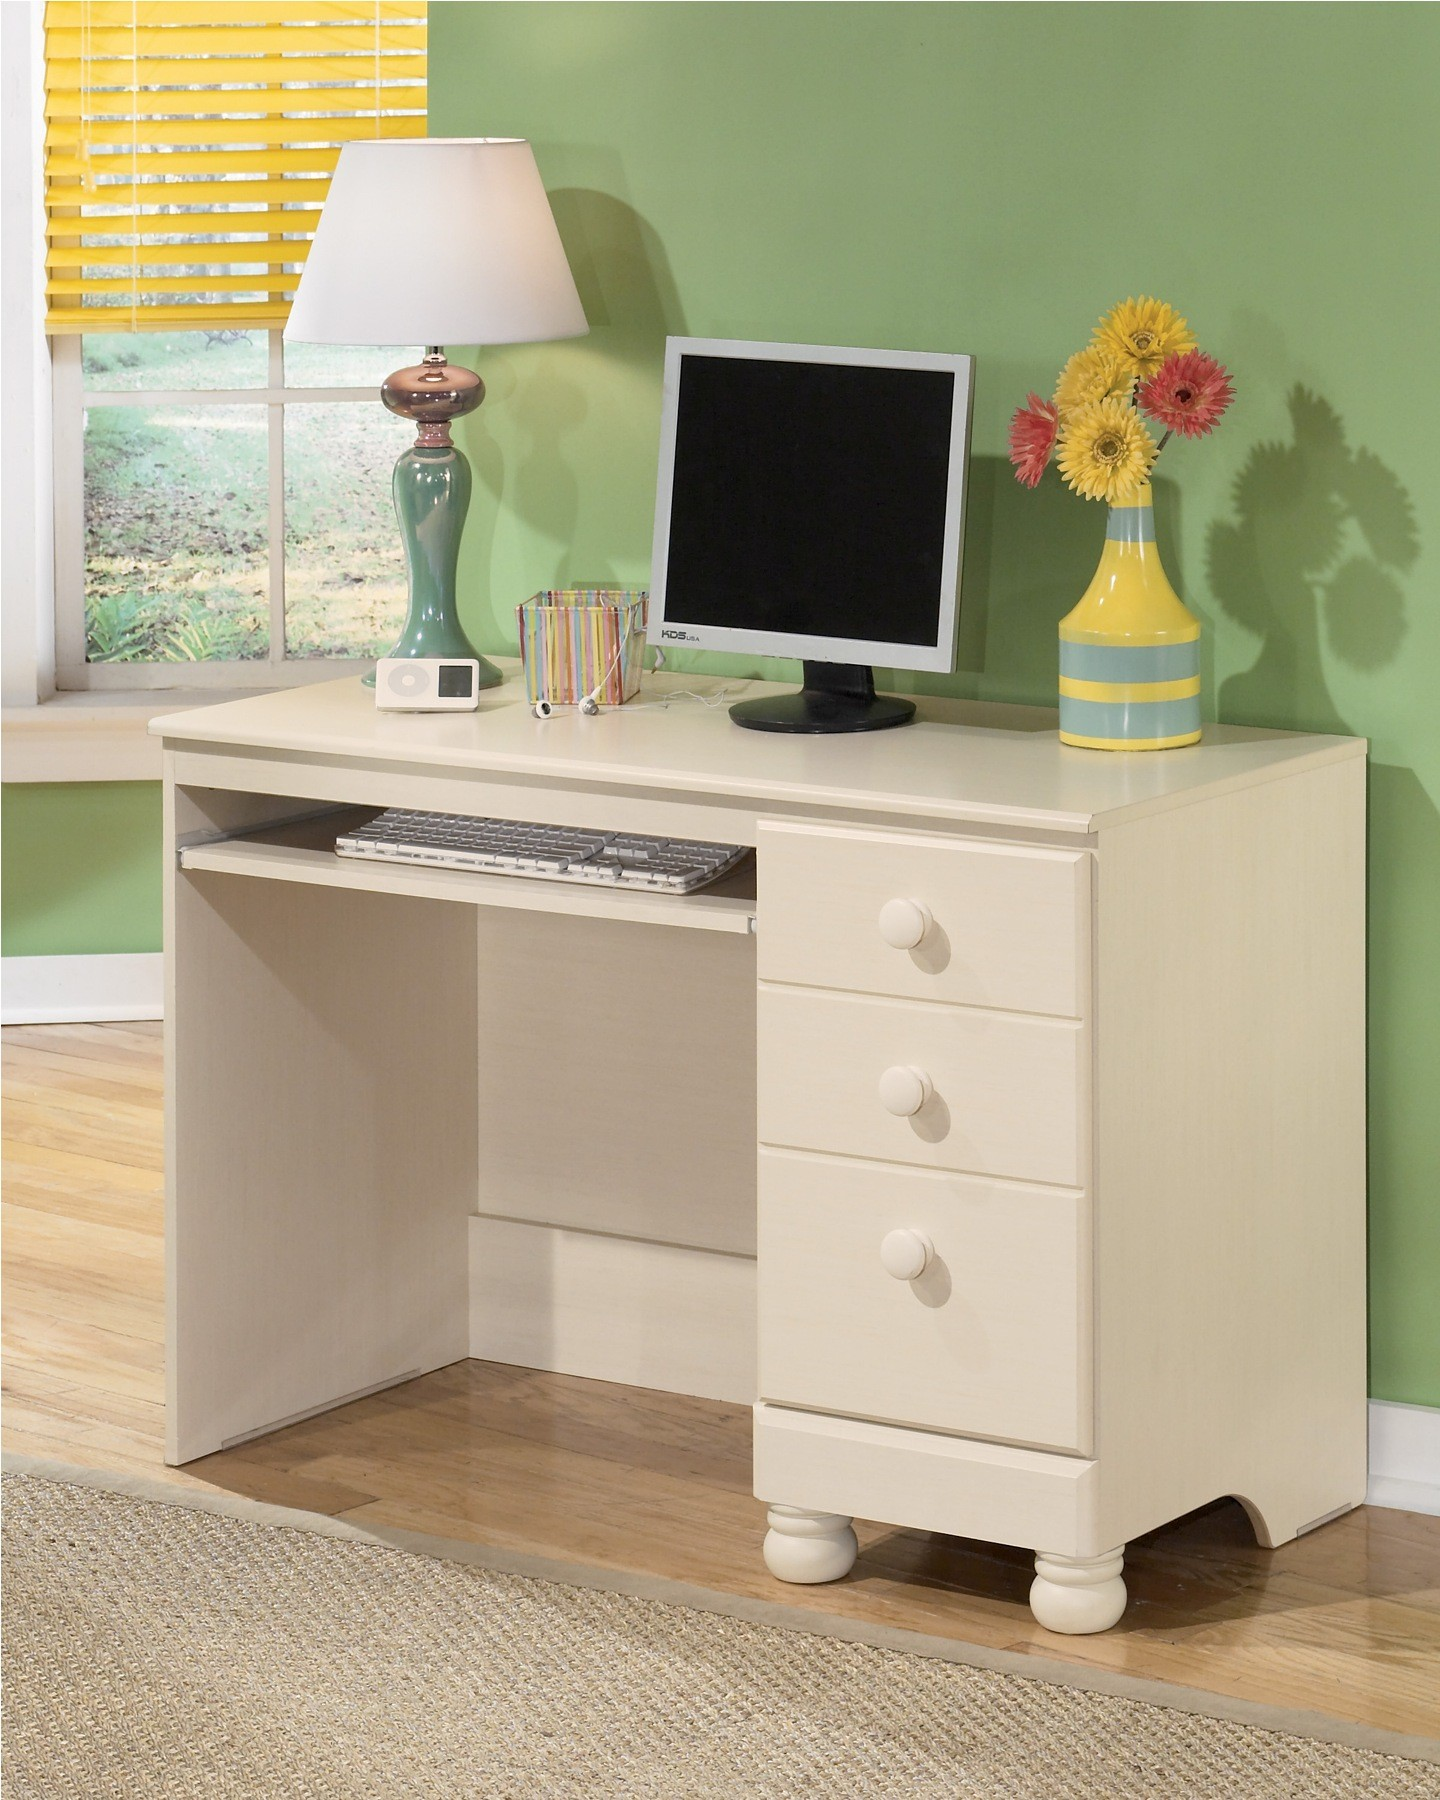 Cottage retreat desk b213 22 for Cottage retreat ii